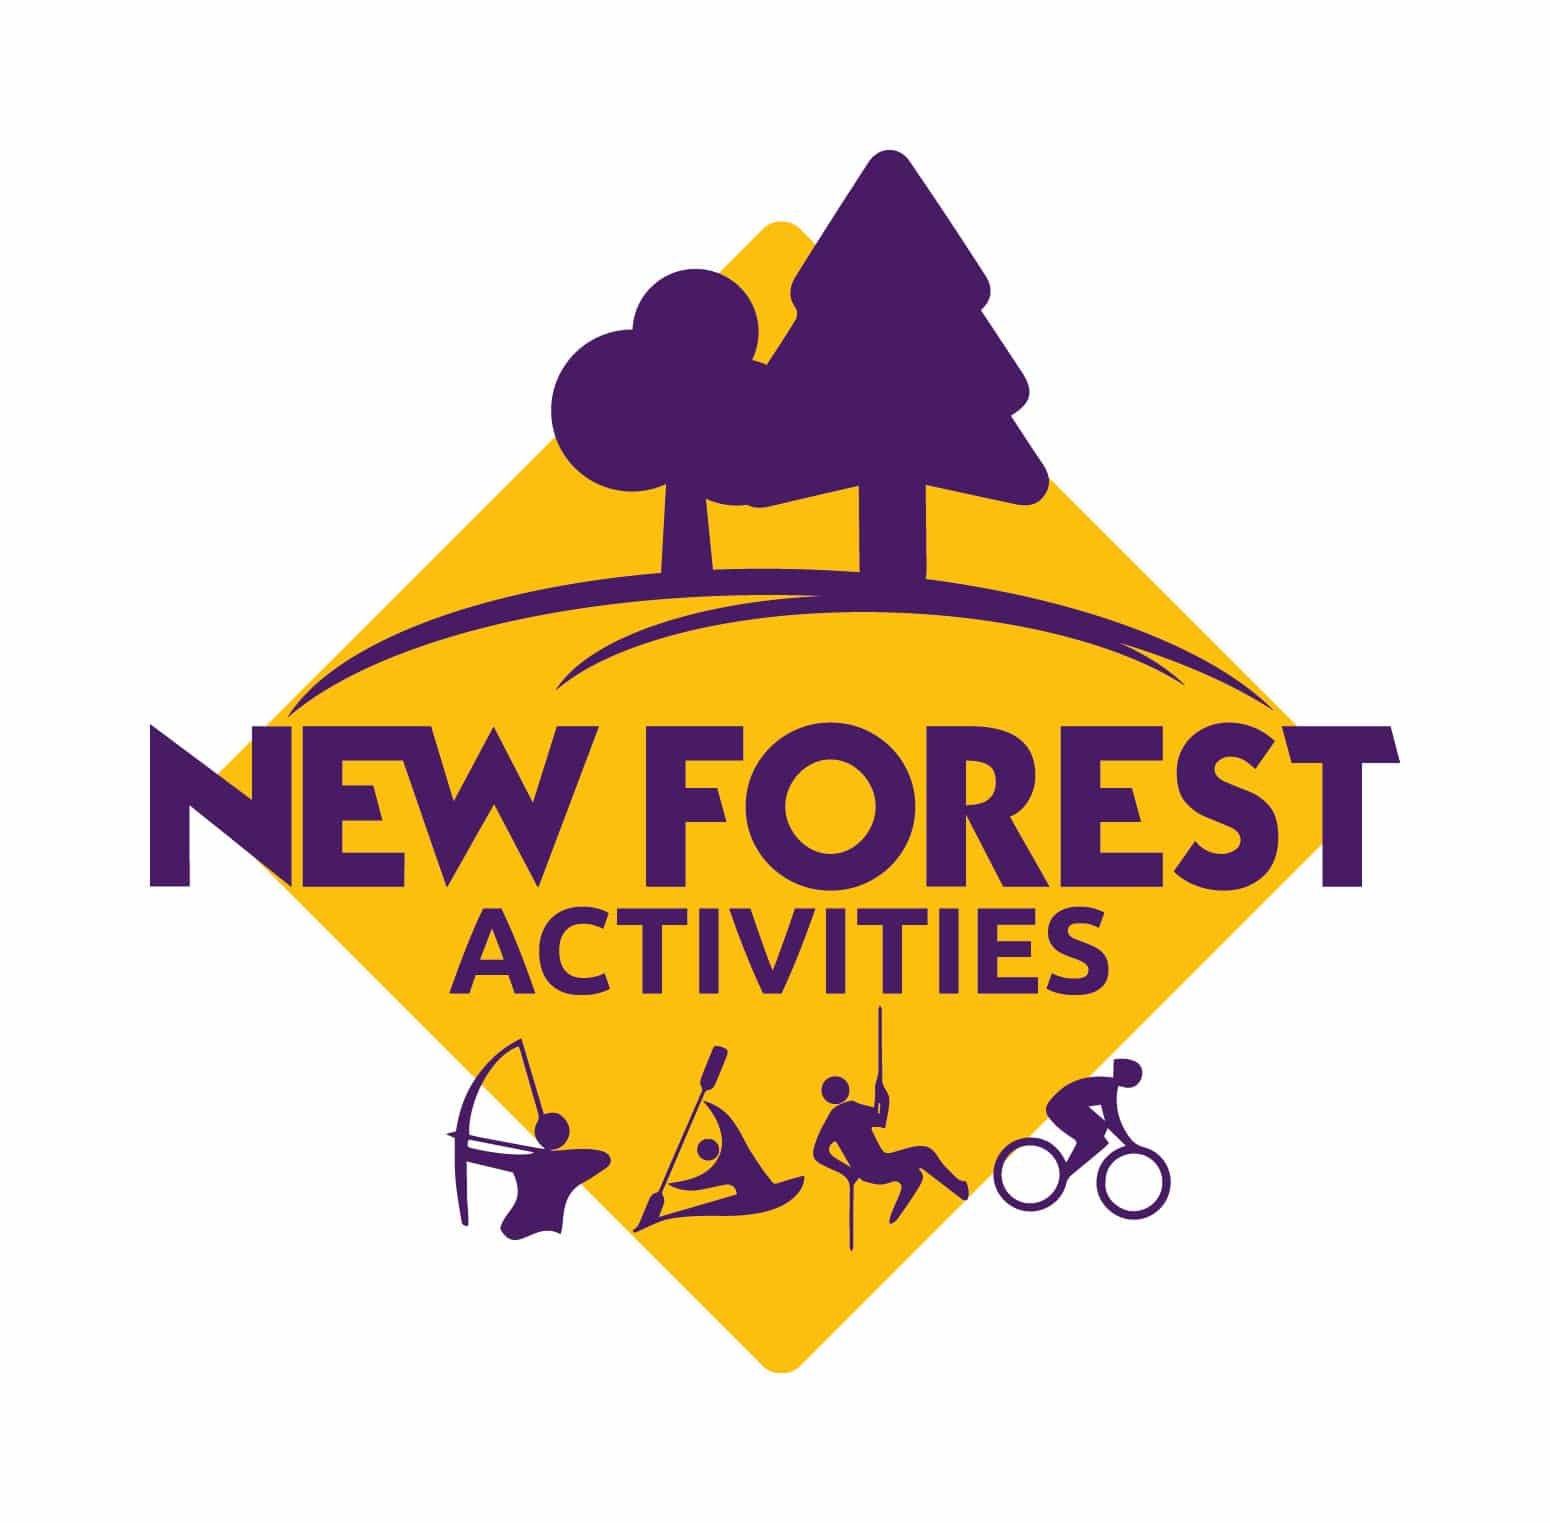 New Forest Activities